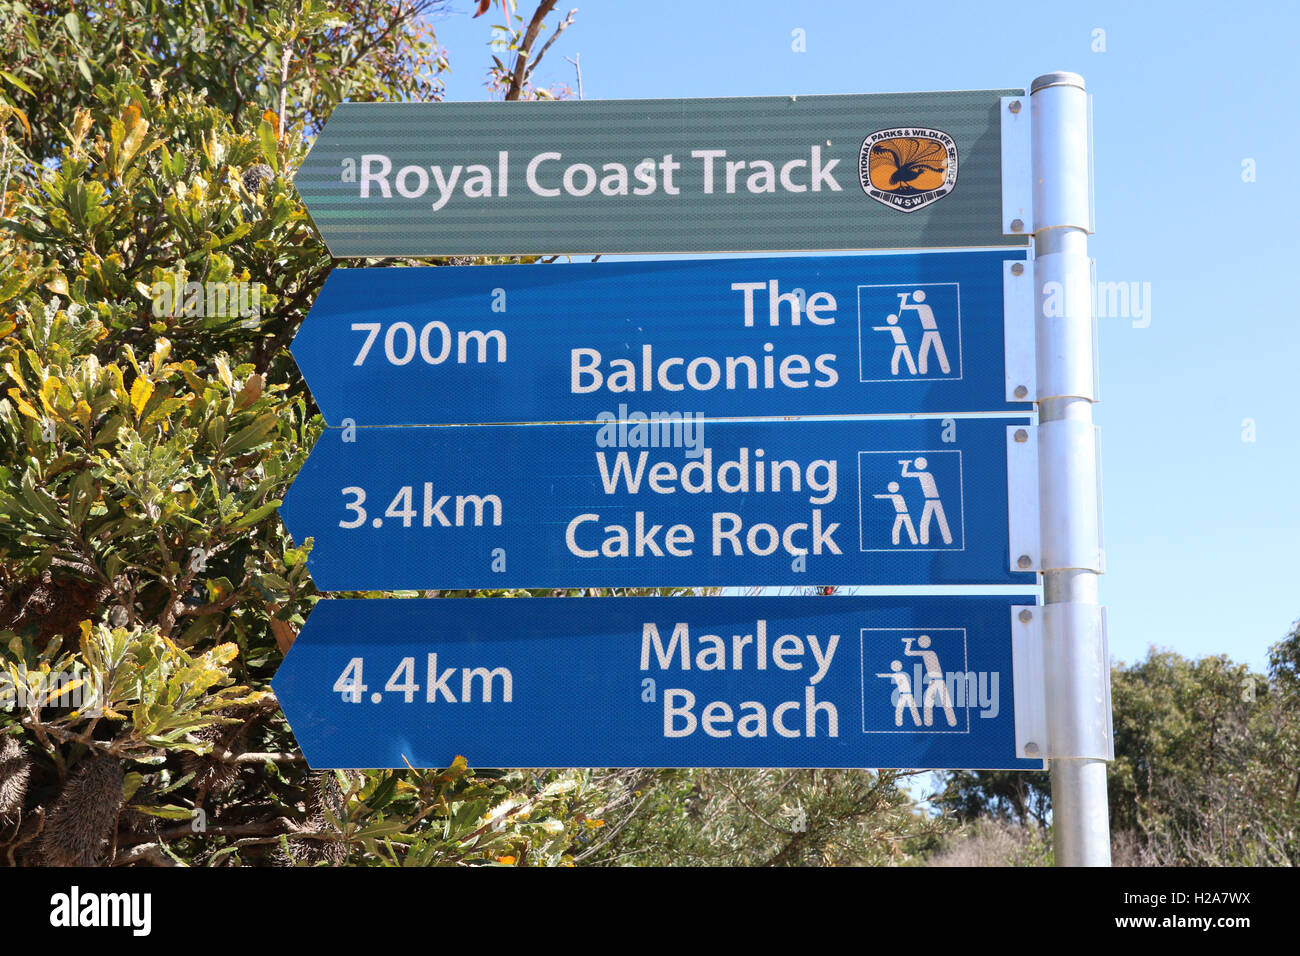 the royal coast track leading to the balconies wedding cake rock